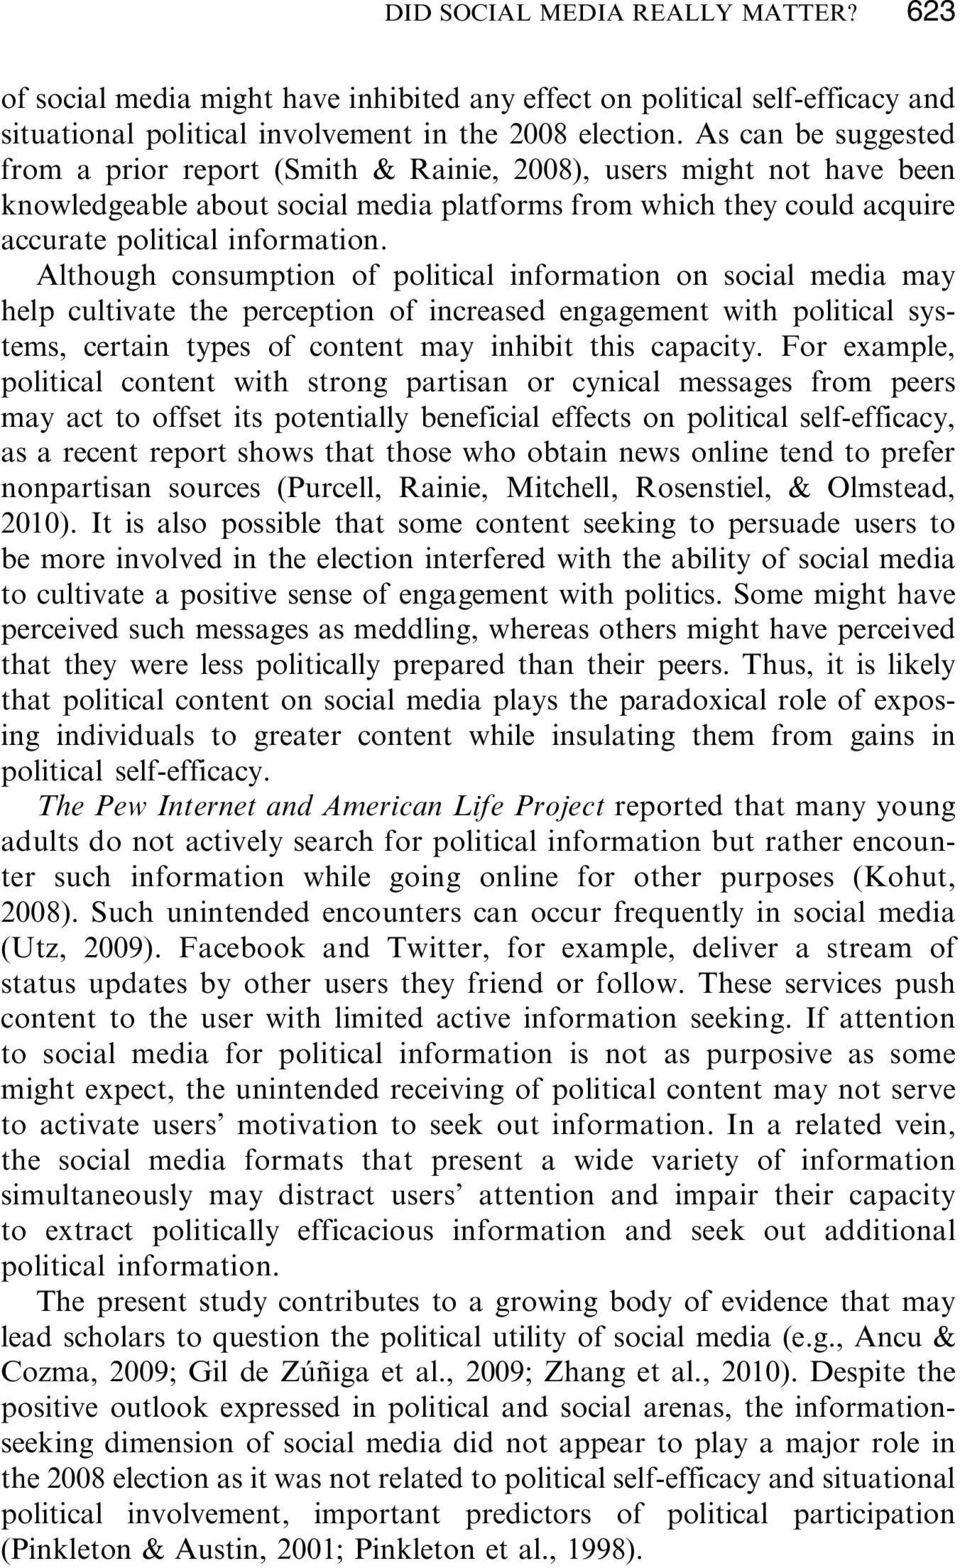 Although consumption of political information on social media may help cultivate the perception of increased engagement with political systems, certain types of content may inhibit this capacity.